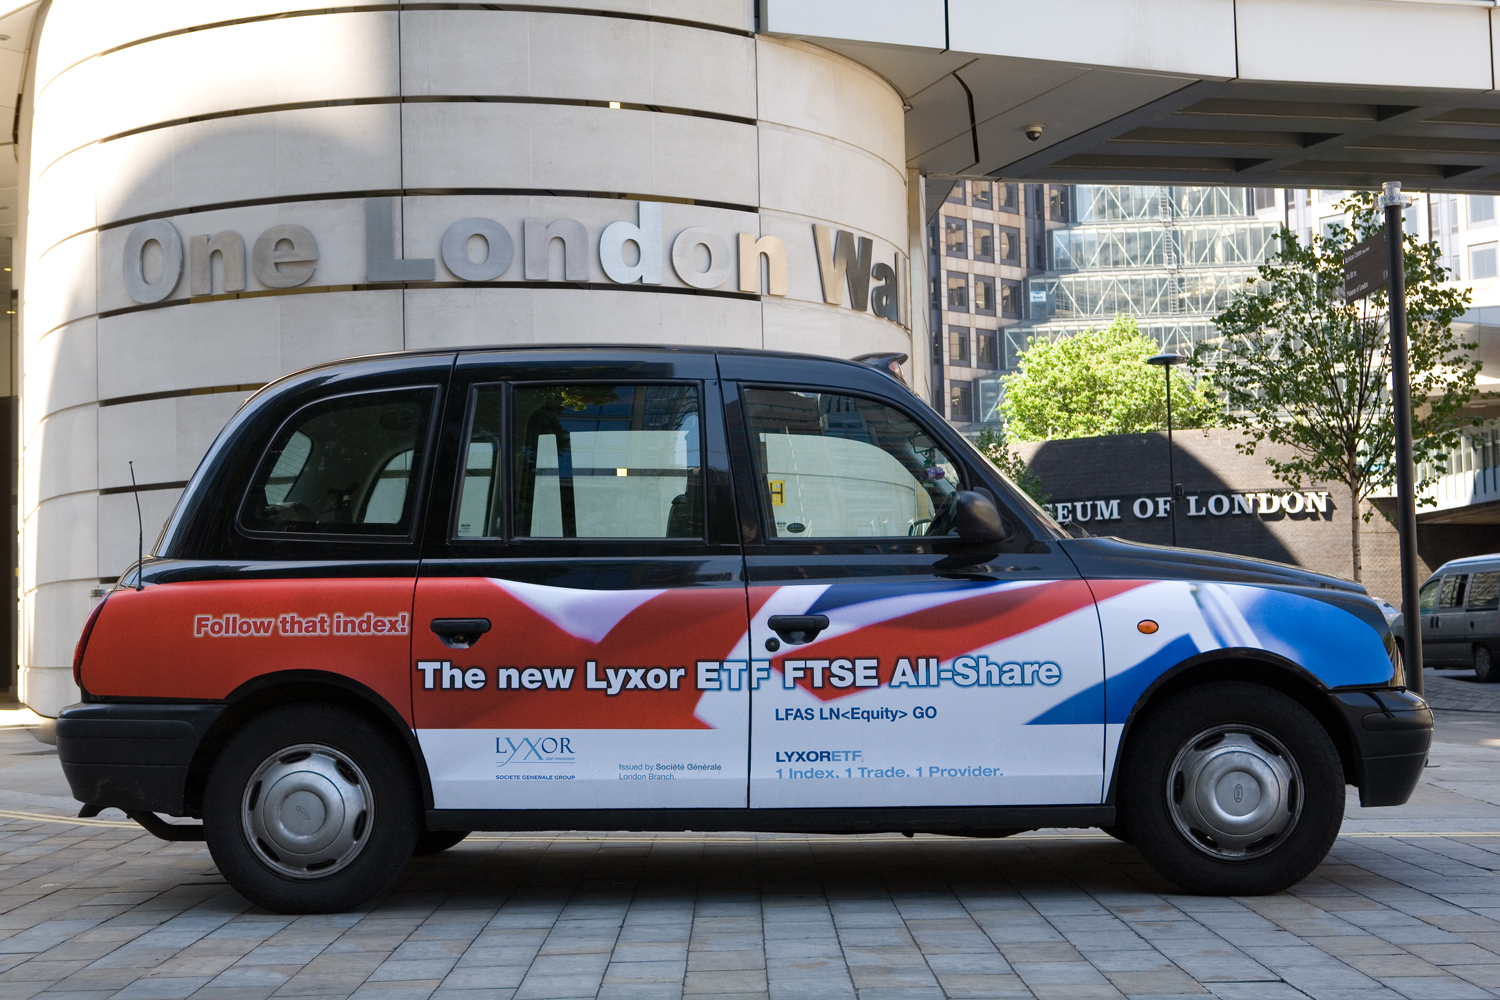 2007 Ubiquitous taxi advertising campaign for Societe Generale - The New Lyxor